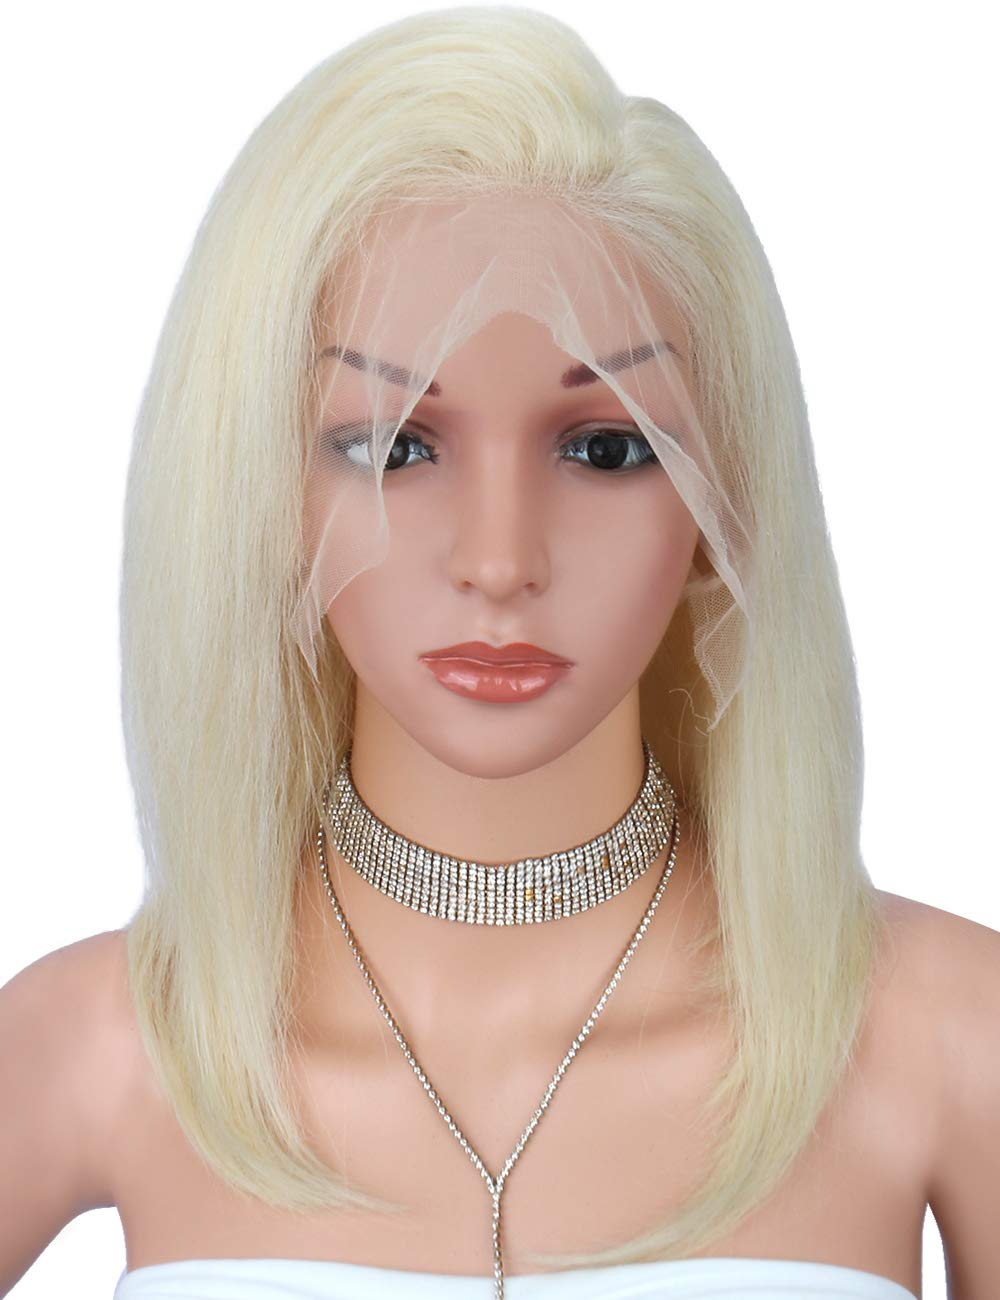 Beauart #613 Blonde Full Lace Human Hair Wigs with Baby Hair and Pre Plucked Hairline for White Women 100% Brazilian Remy Human Hair Wigs, 14 Inches